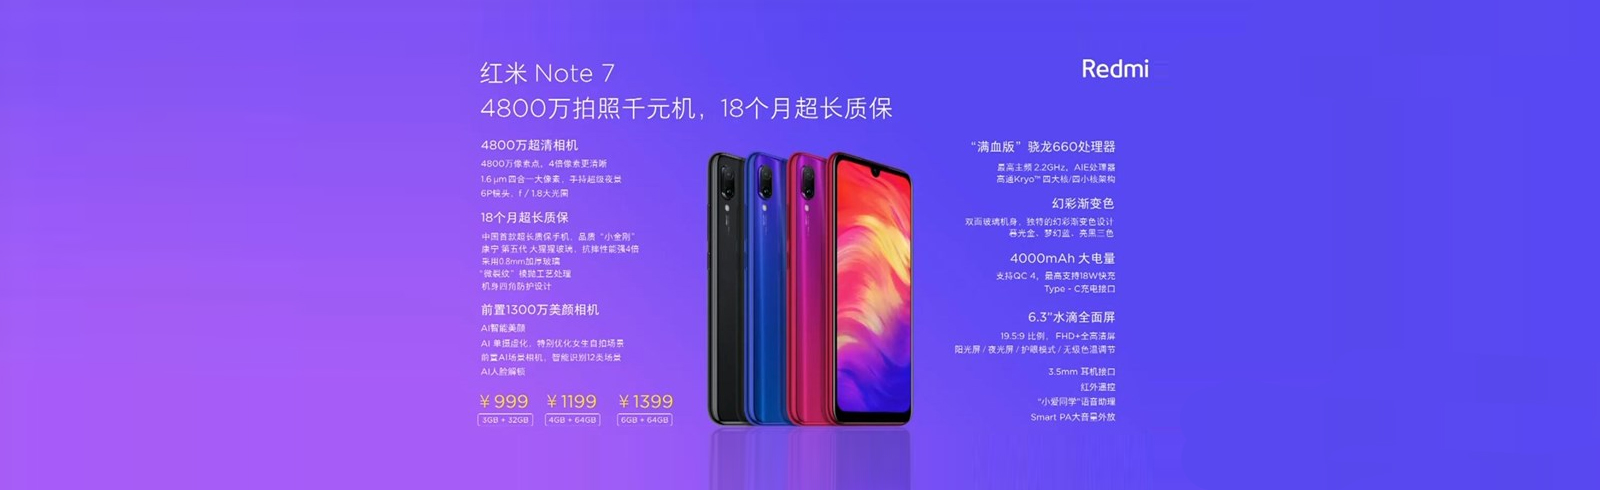 Redmi Is Officially A Separate Xiaomi Brand Redmi Note 7 Is Announced